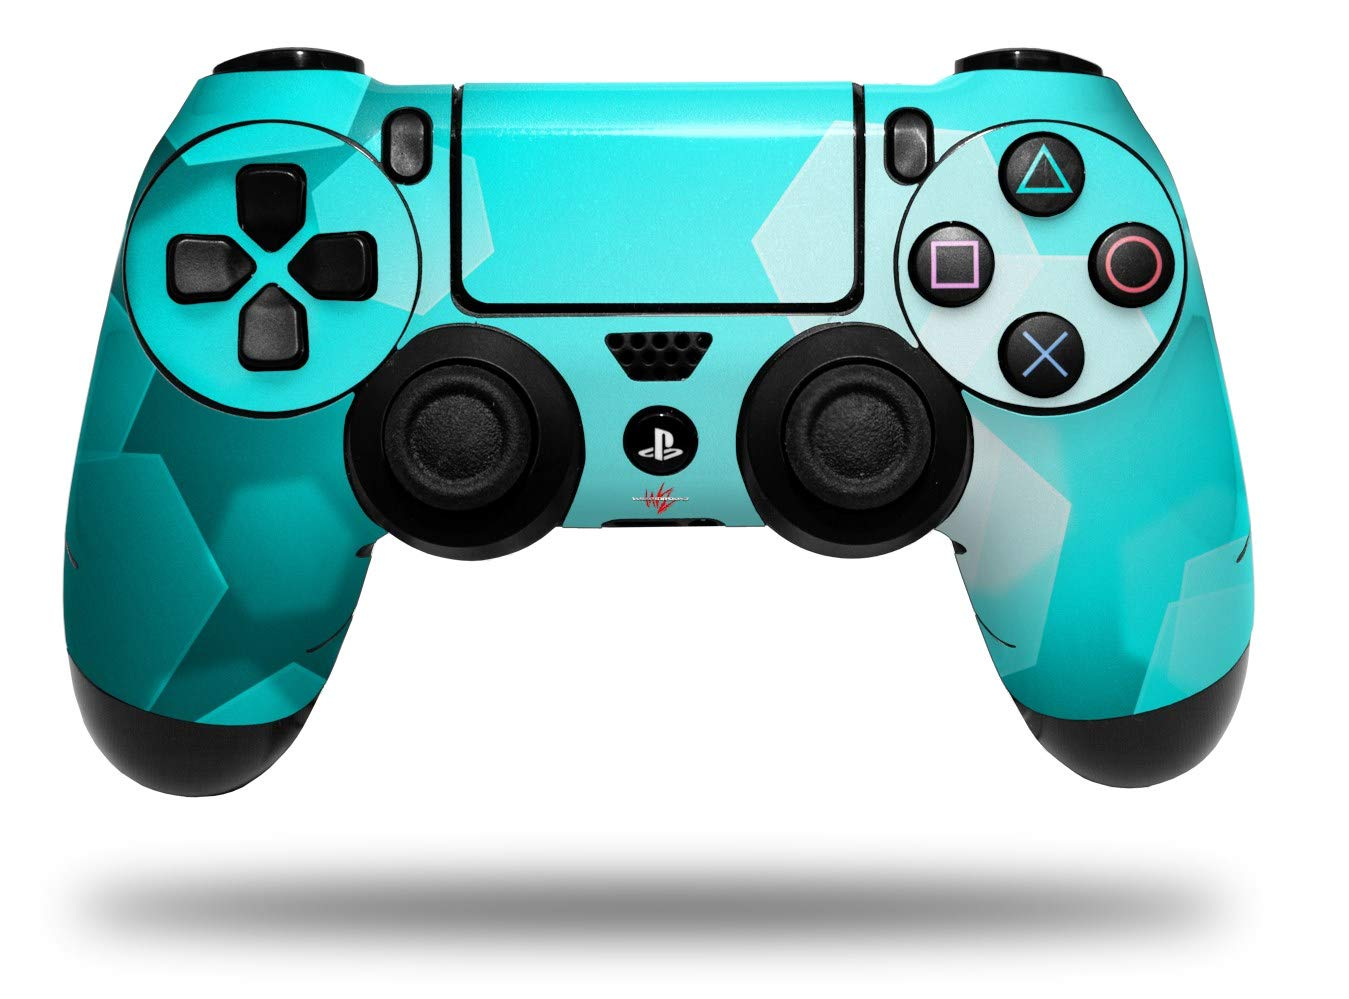 WraptorSkinz Skin compatible with Sony PS4 Dualshock Controller PlayStation 4 Original Slim and Pro Bokeh Hex Neon Teal (CONTROLLER NOT INCLUDED)